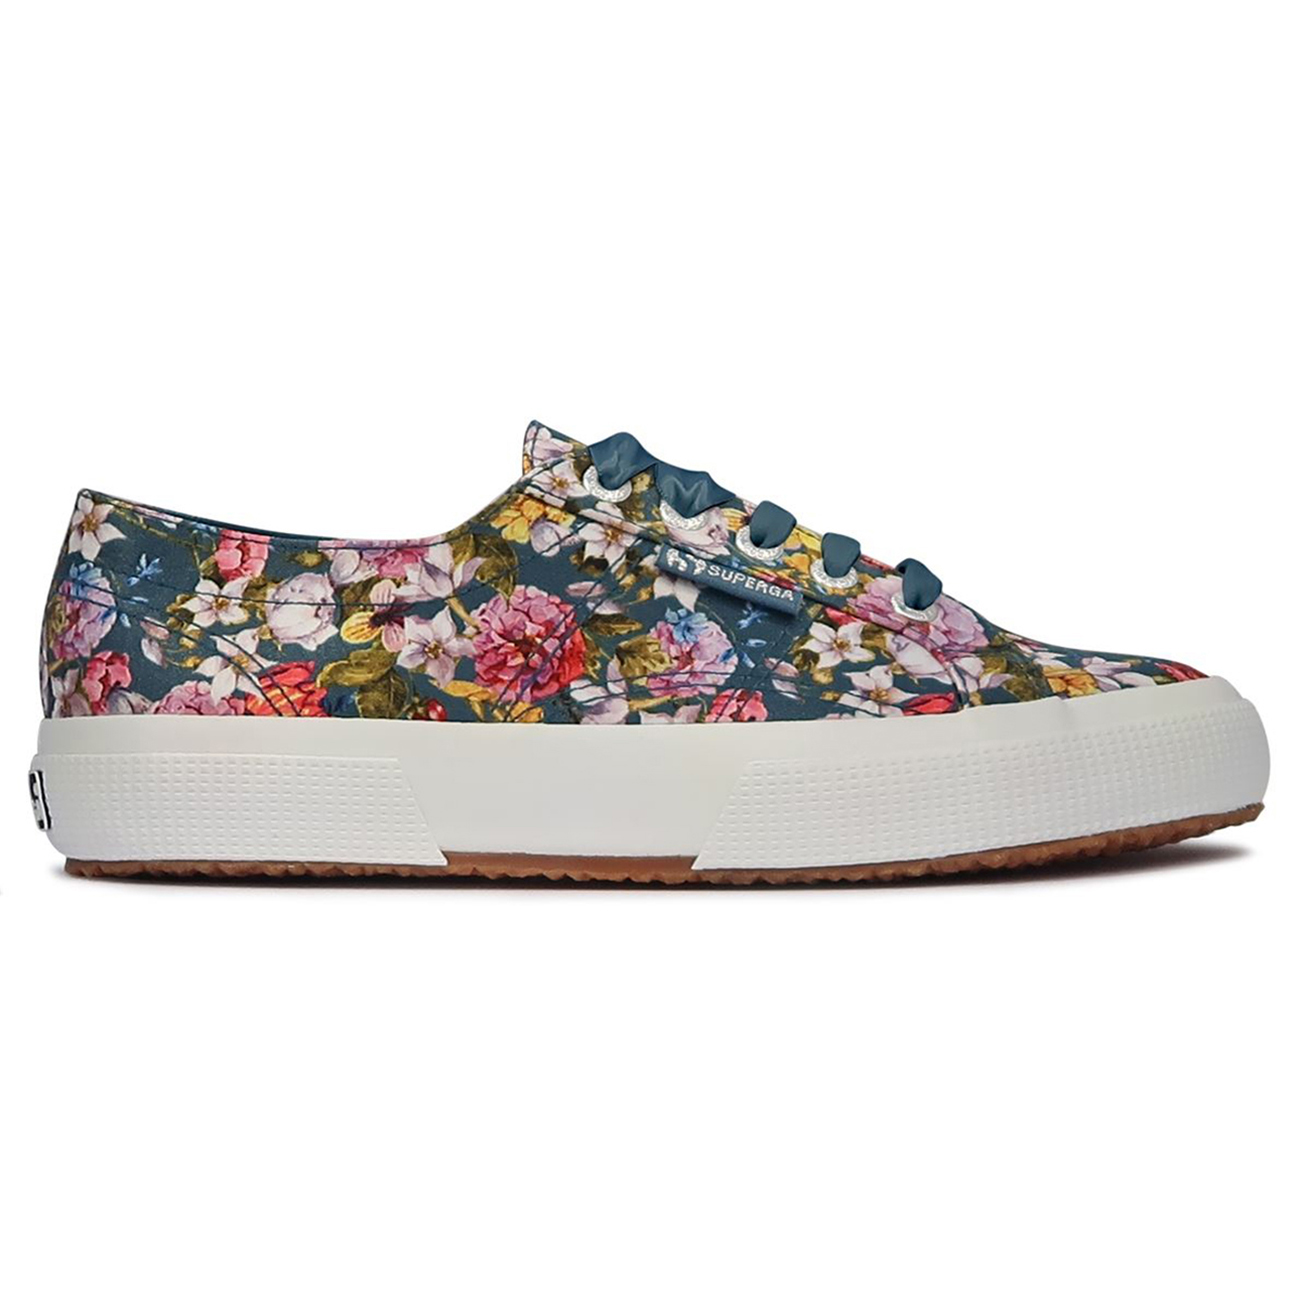 Womens Superga 2750 Flowery Satin Closed Toe Low Top Lace Up Trainers UK 3-9